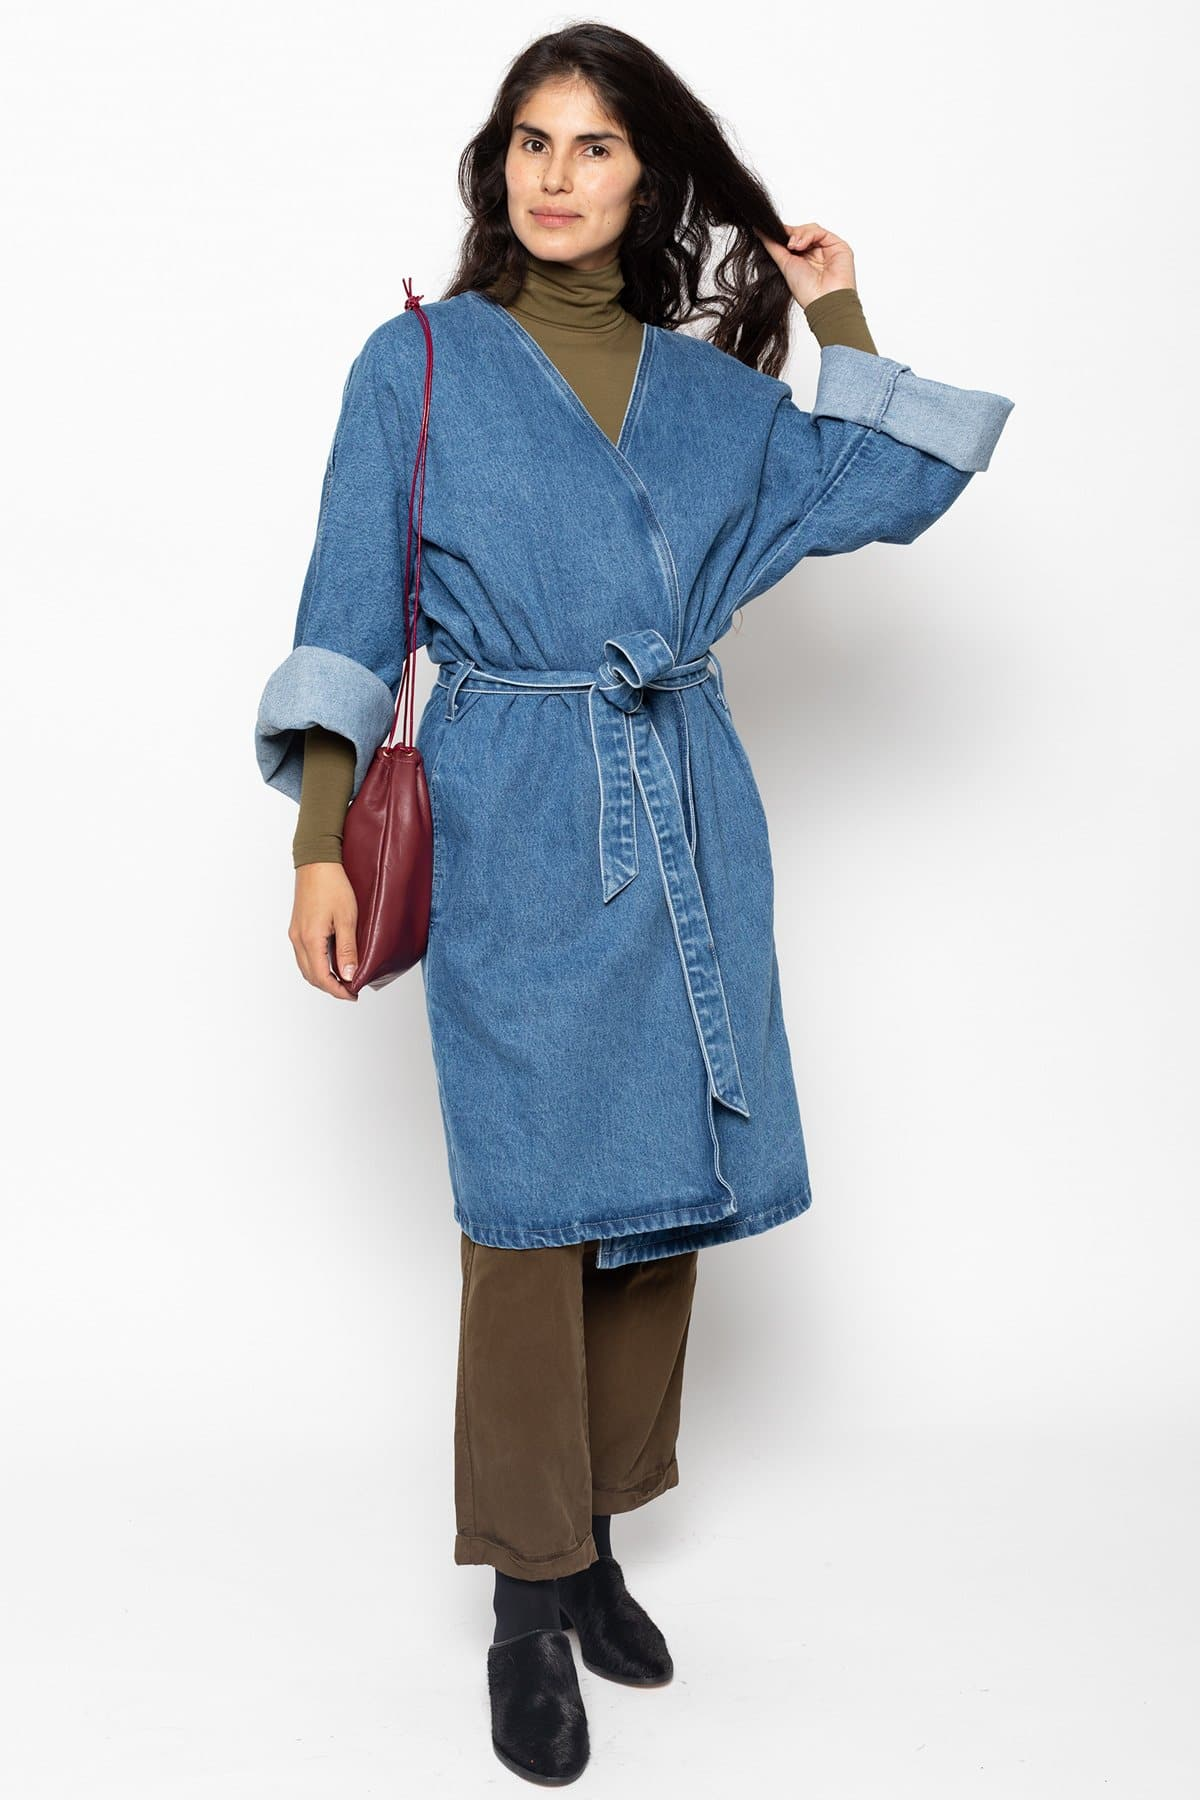 RDNW312 - The Oversized Denim Wrap Coat